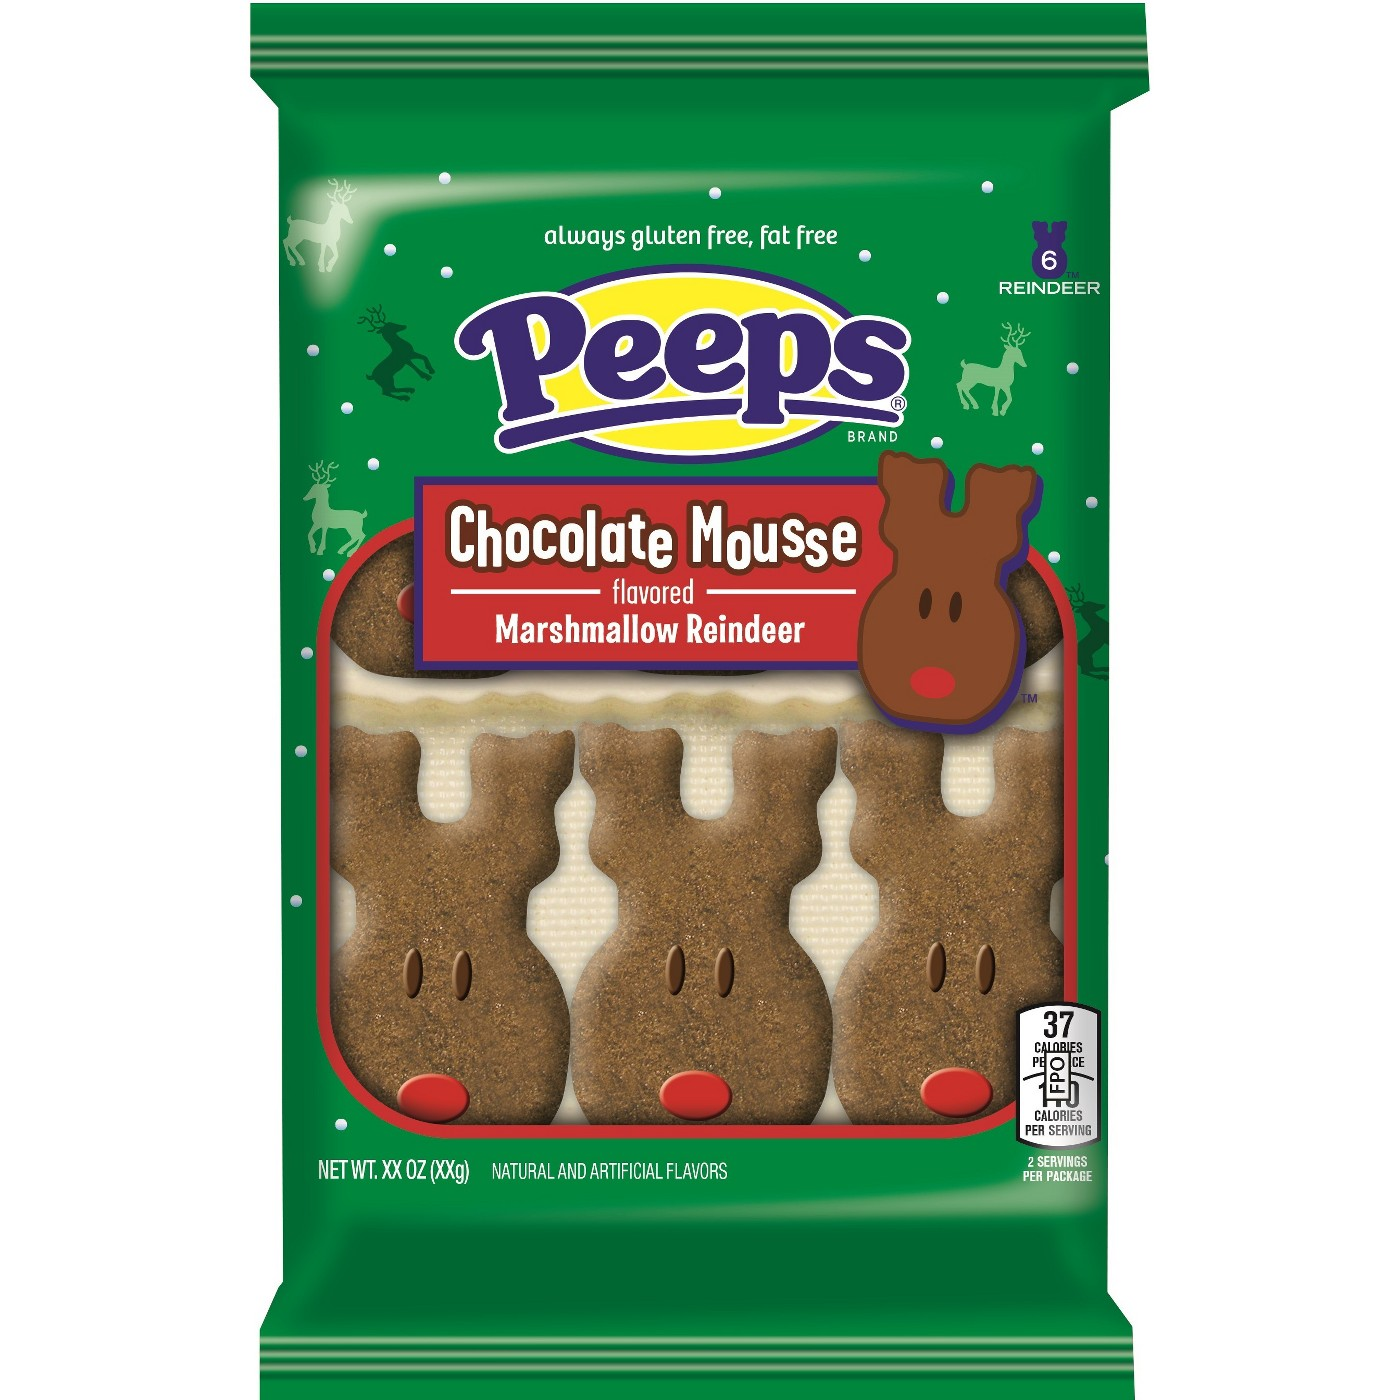 Peeps Christmas Chocolate Mousse Reindeer - 6ct/2.375oz - image 1 of 1